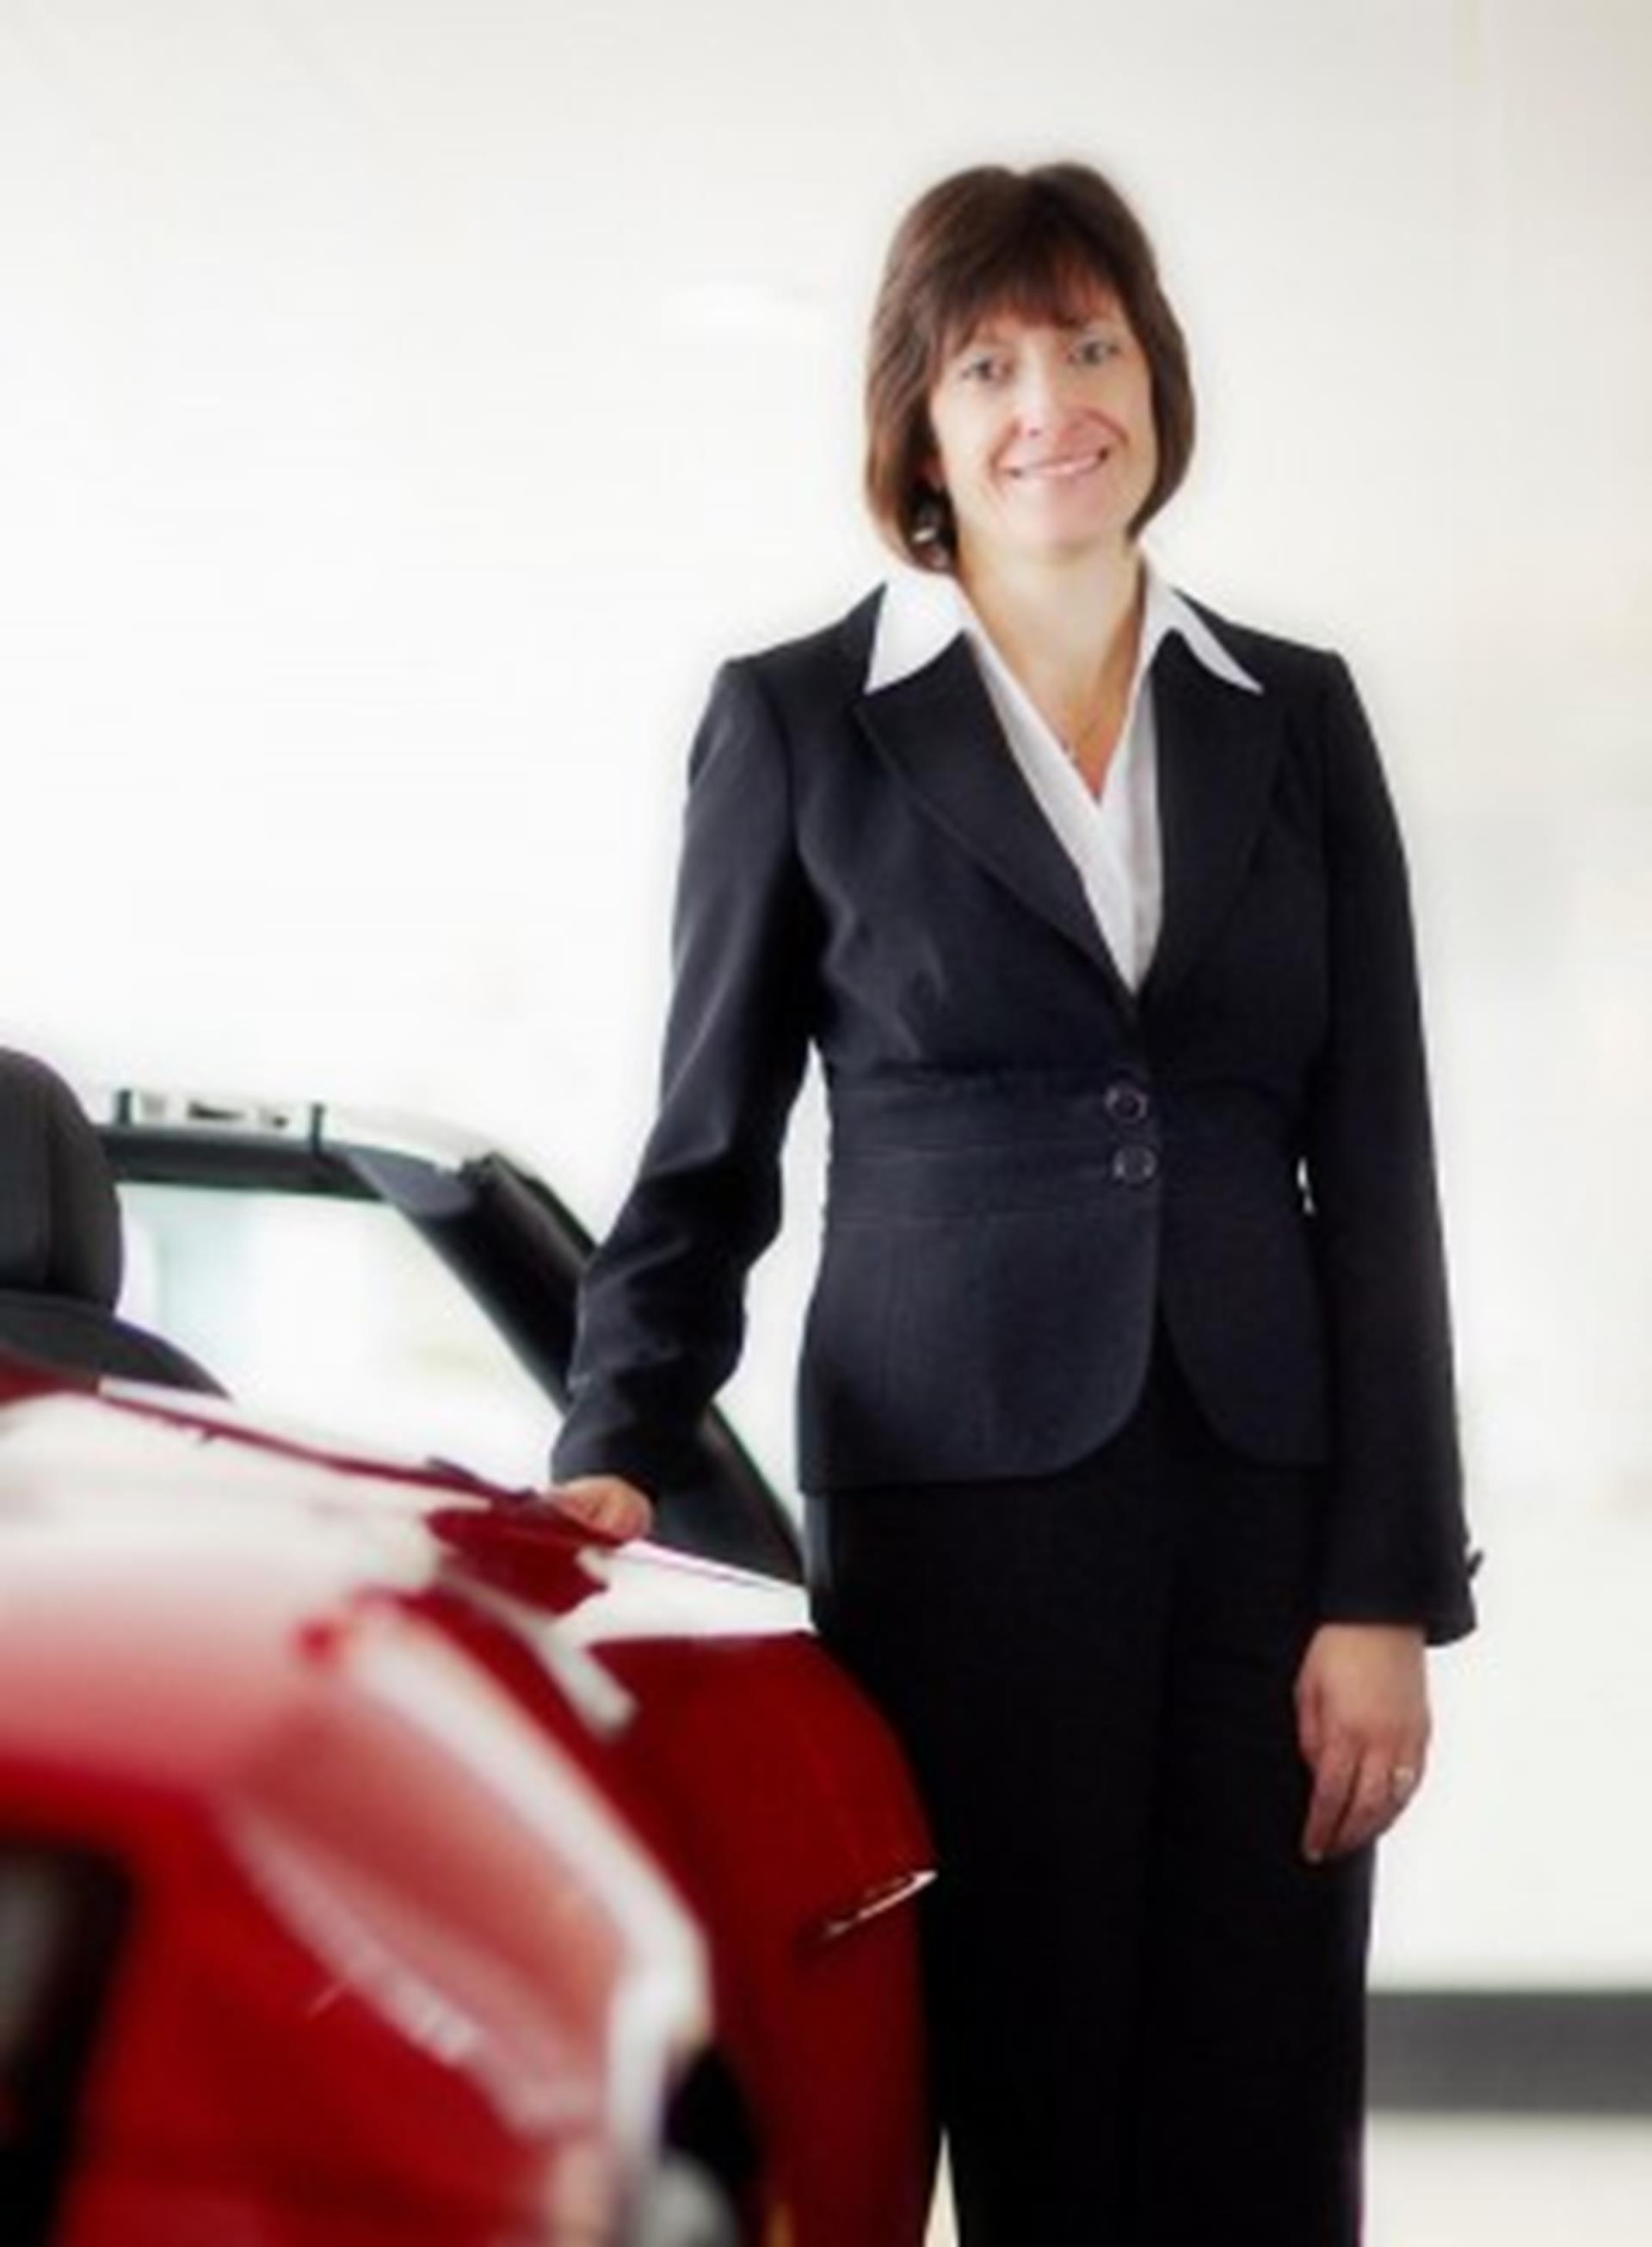 Volkswagen Group Creates New Customer Quality Director Role